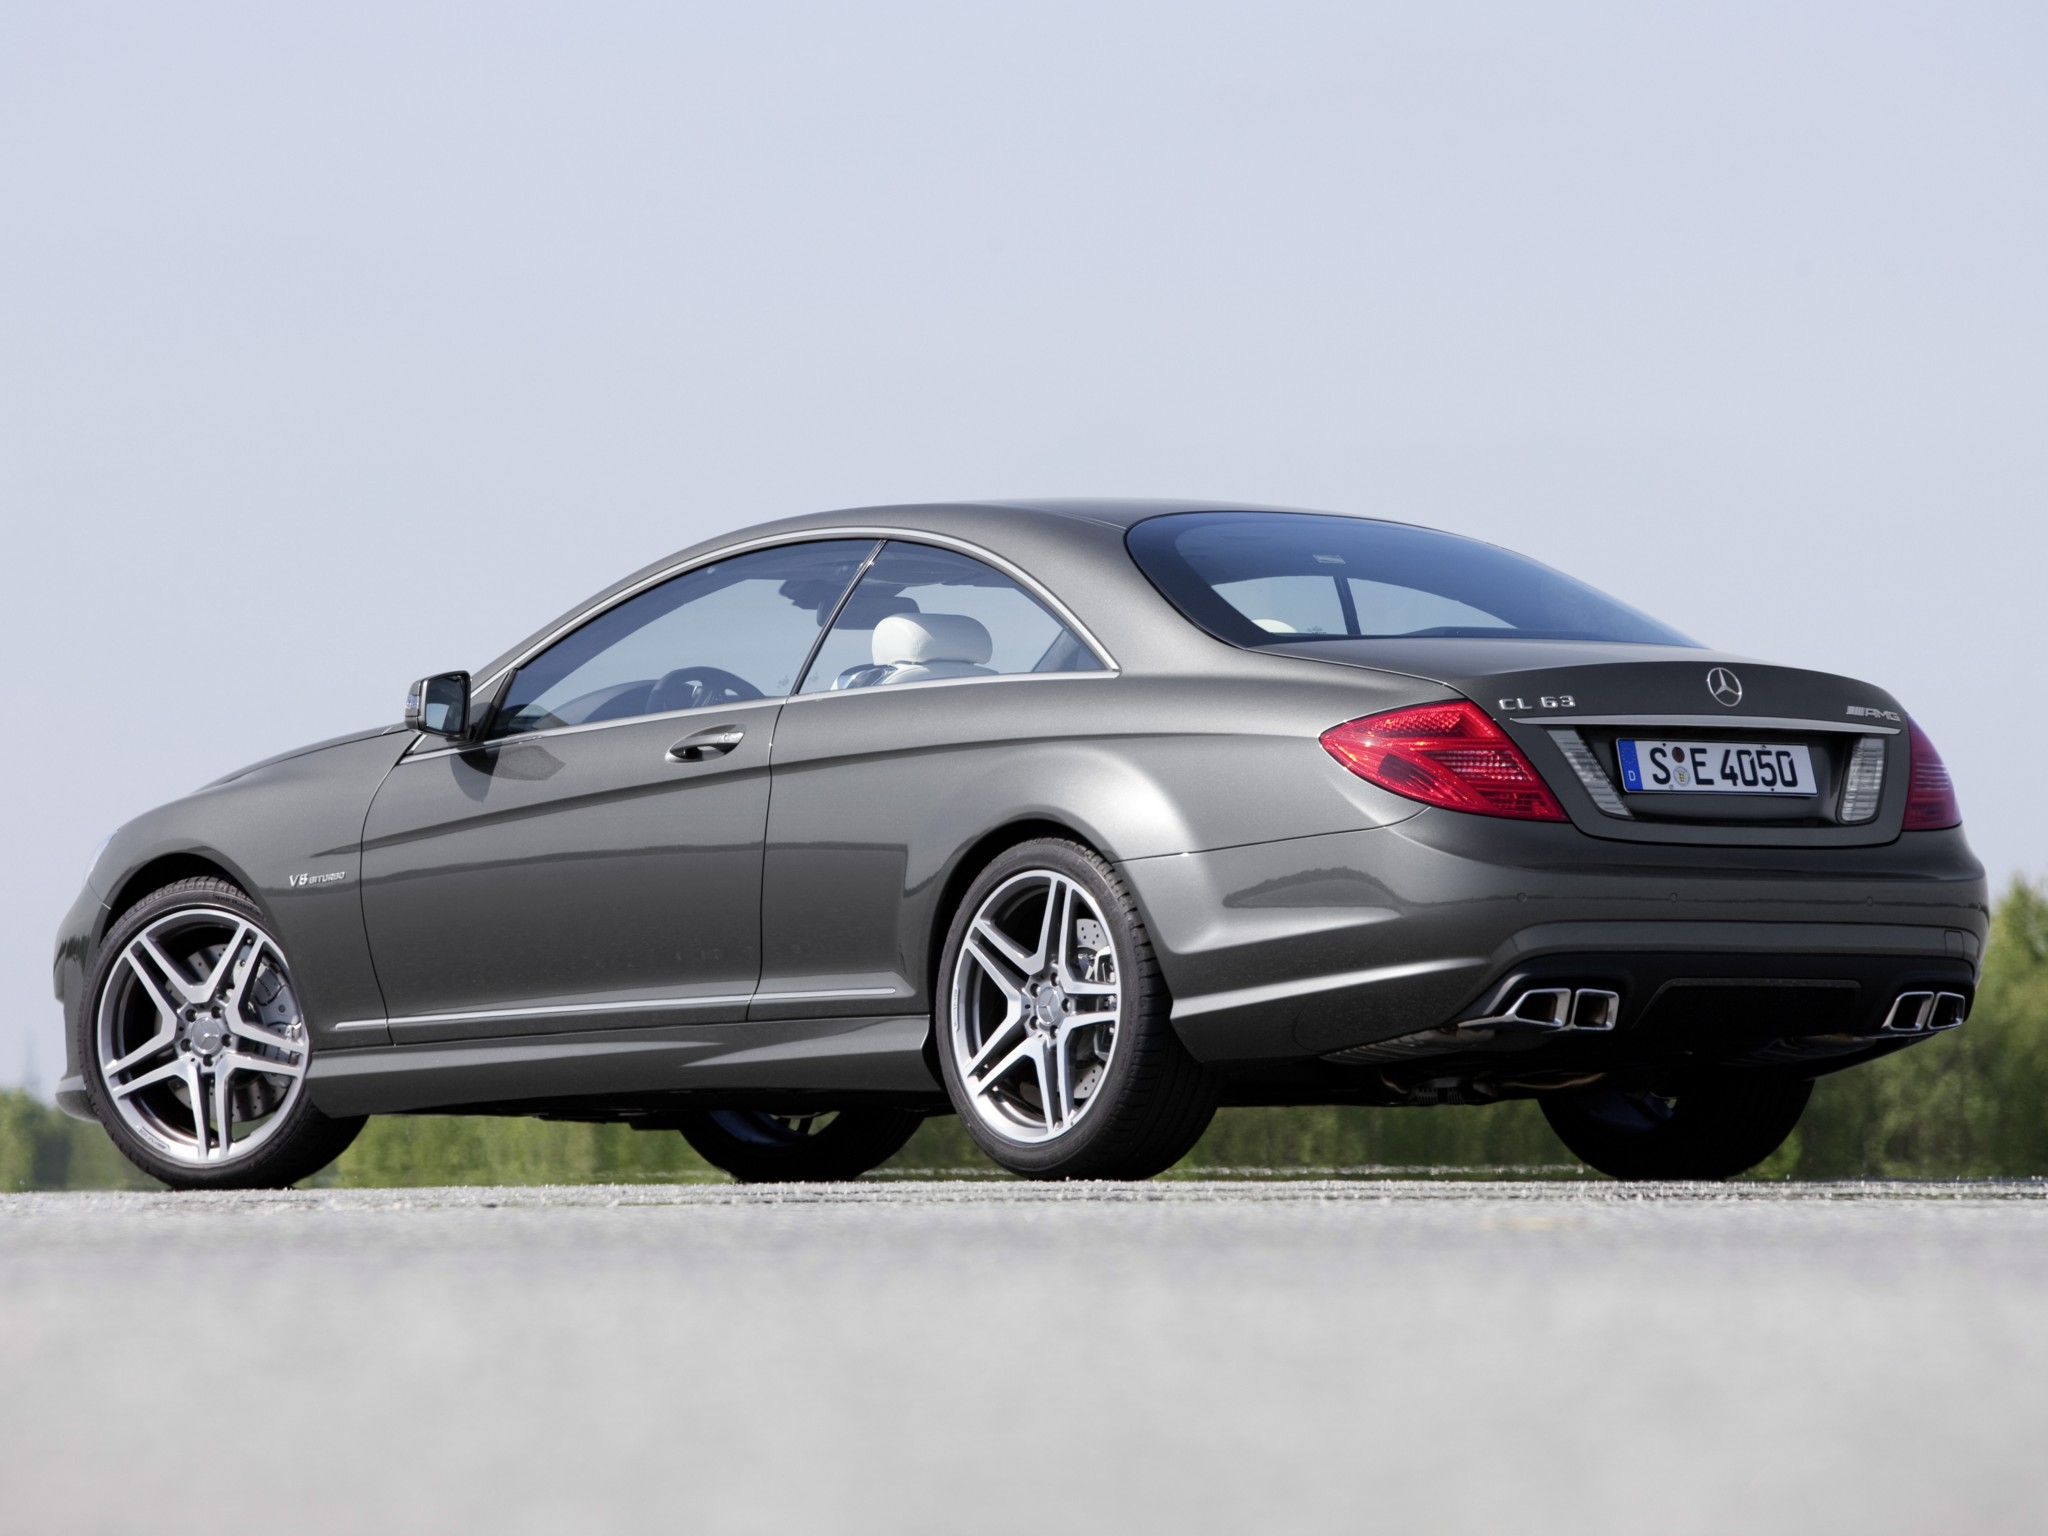 Mercedes benz cl 63 amg c216 specs 2012 2013 for Mercedes benz car picture gallery